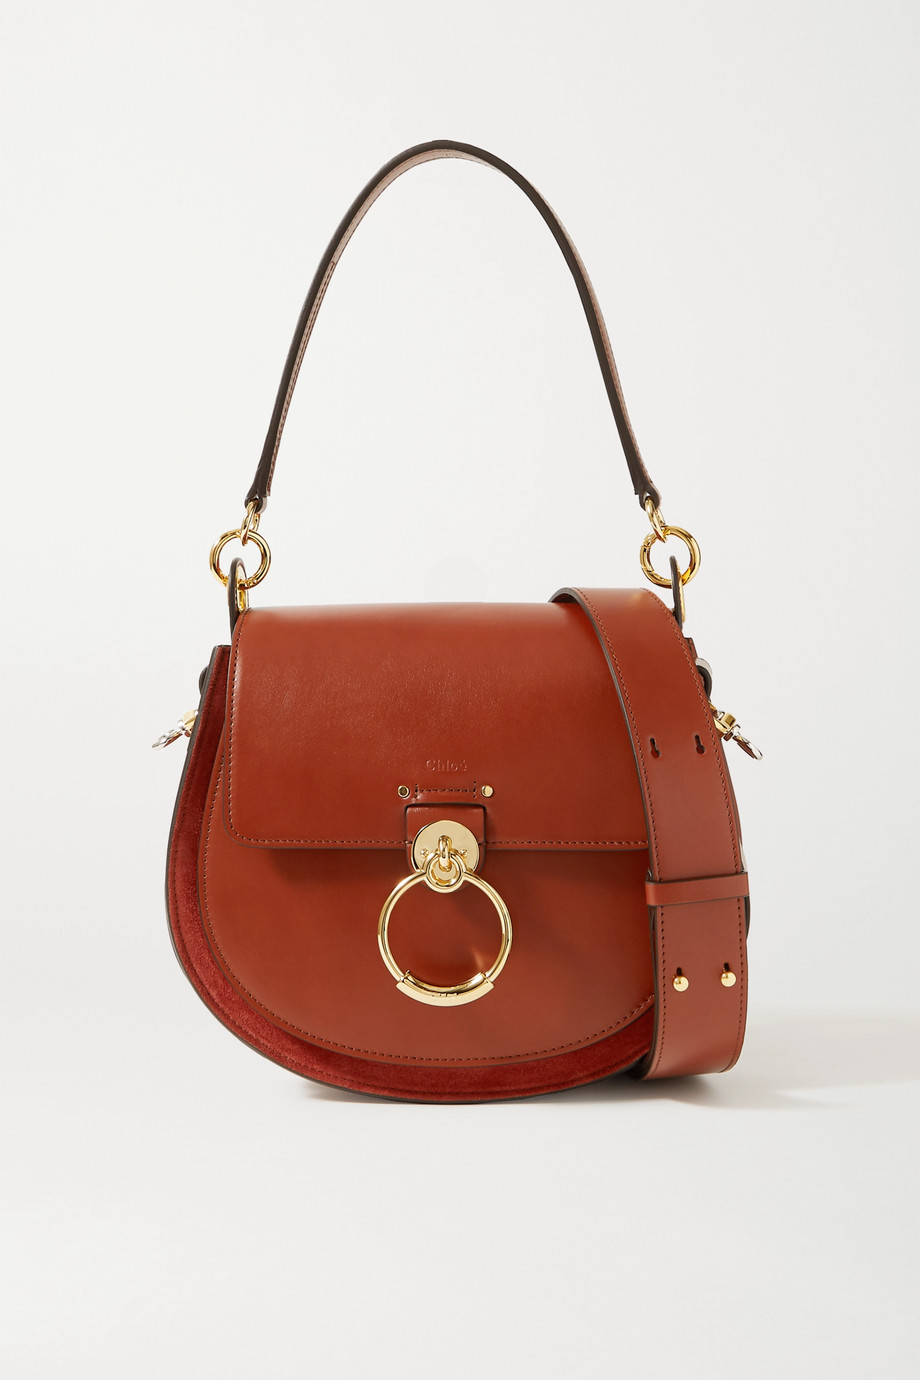 Chloé Tess large leather and suede shoulder bag